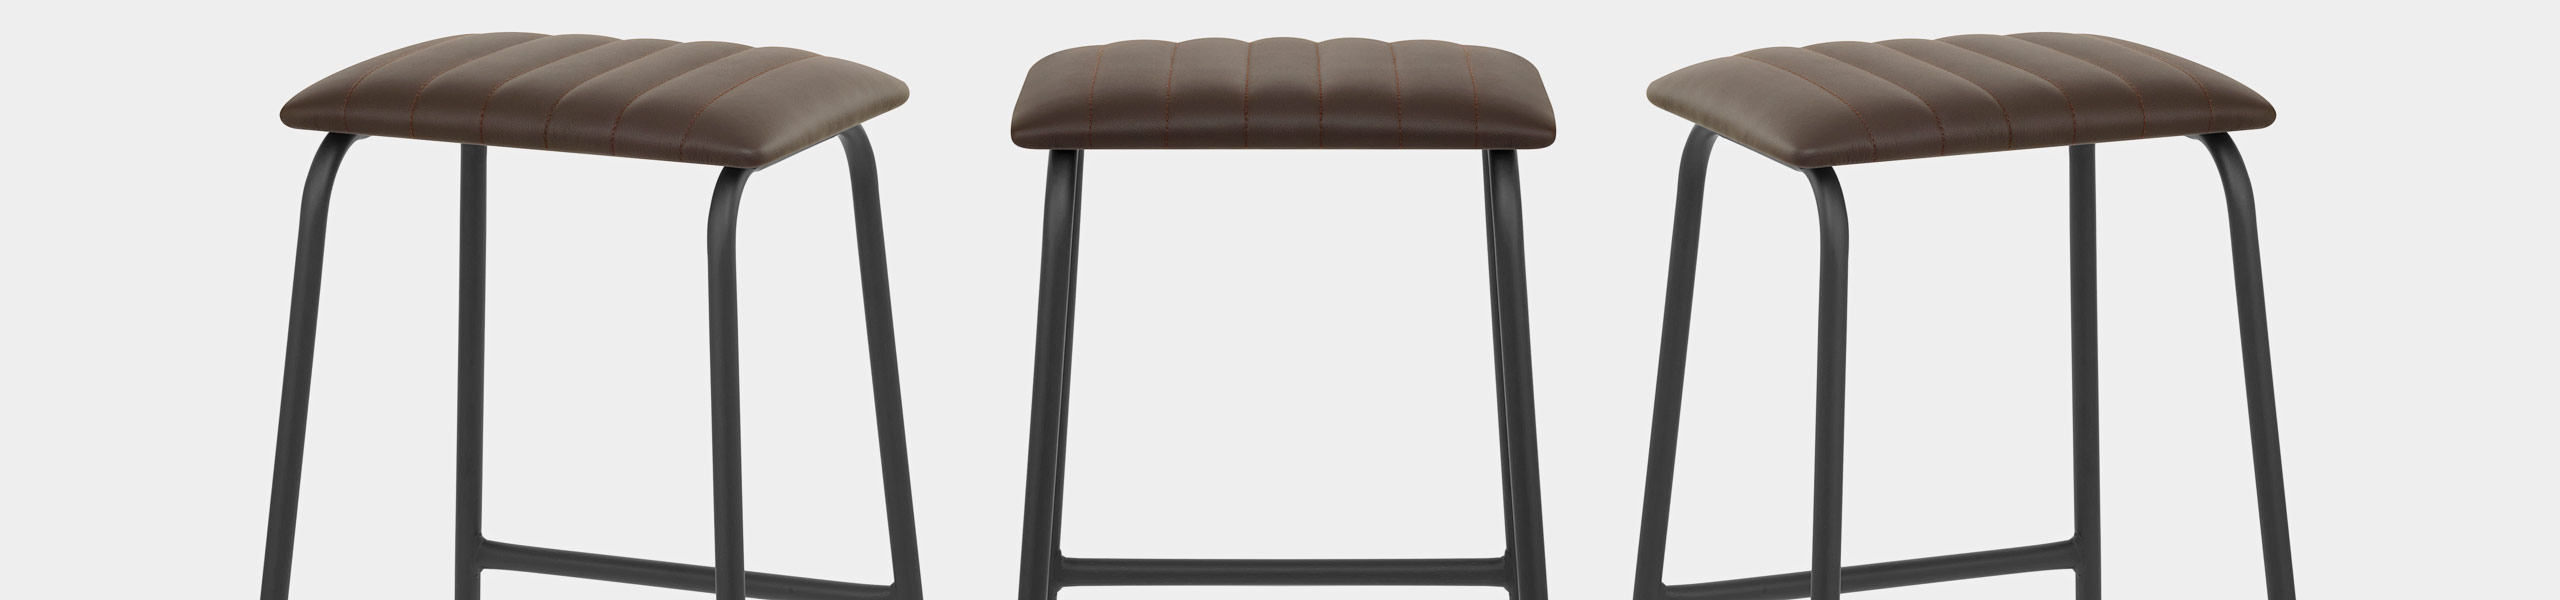 Sasha Real Leather Stool Brown Video Banner